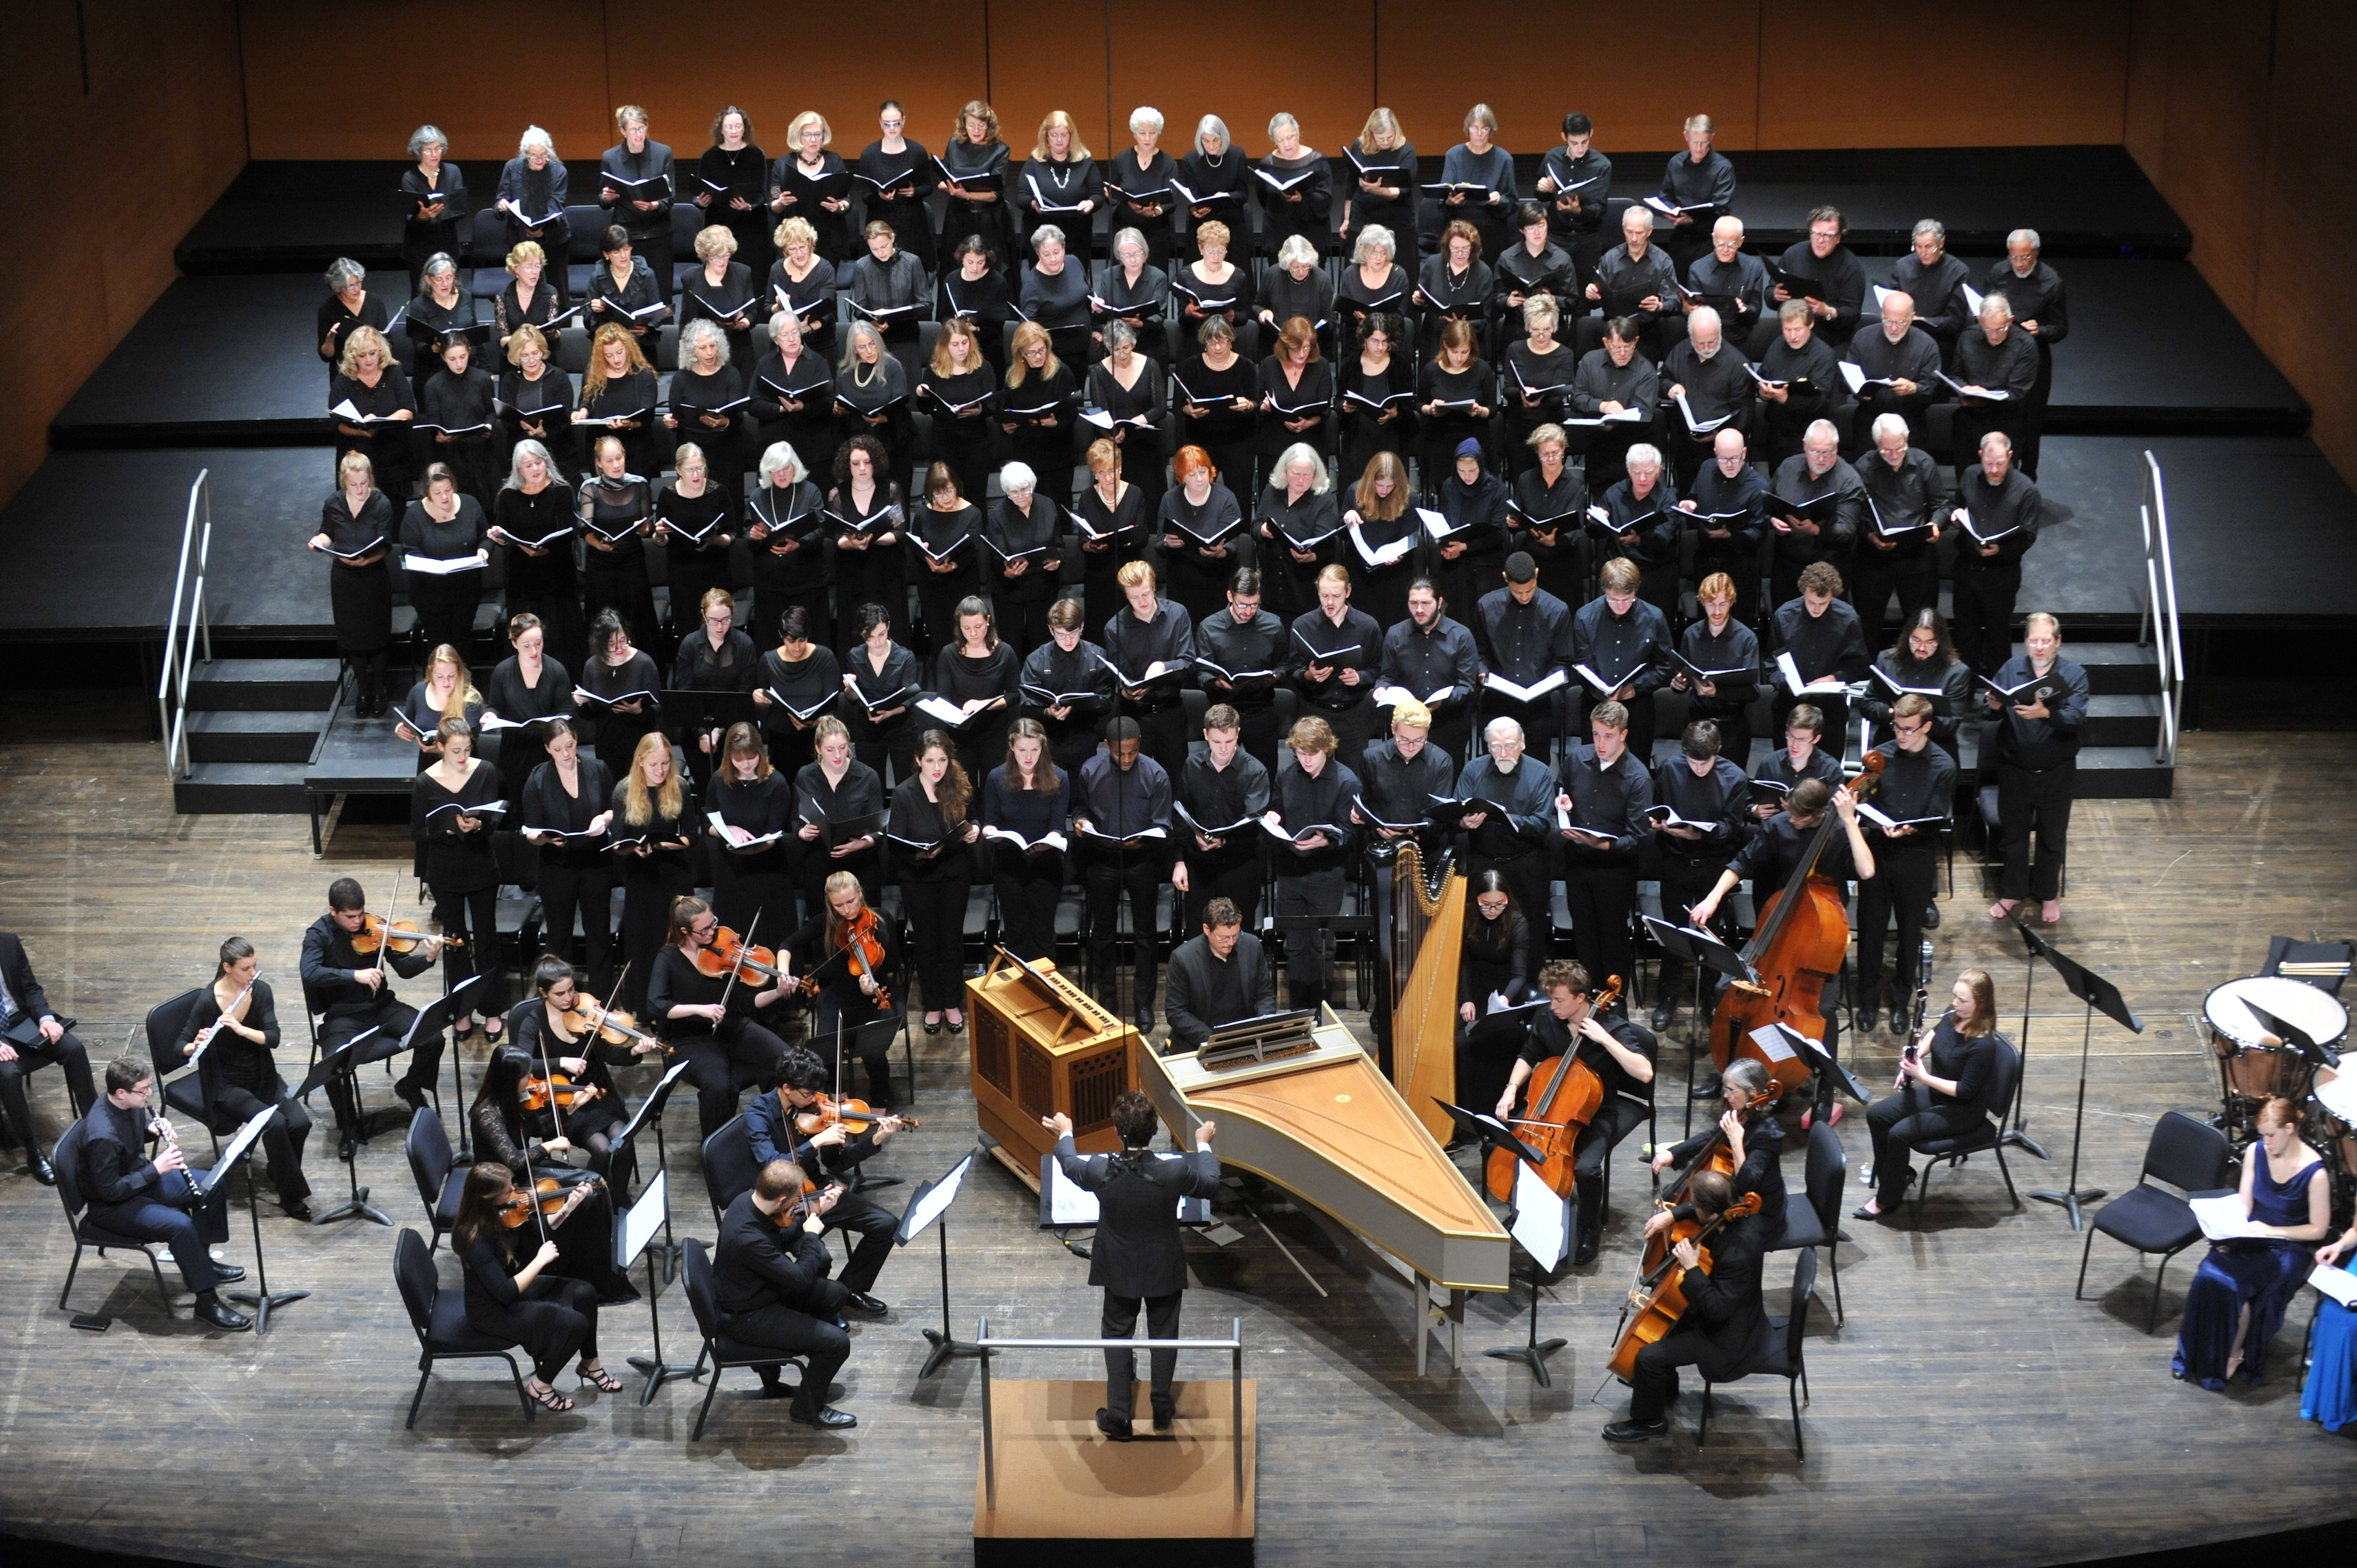 [The Bard Music Program presents A Choral Concert featuring:The Bard College Chamber SingersThe Bard College Symphonic ChoruswithThe Bard Baroque Ensembleand soloists from the Graduate Vocal Arts Program]